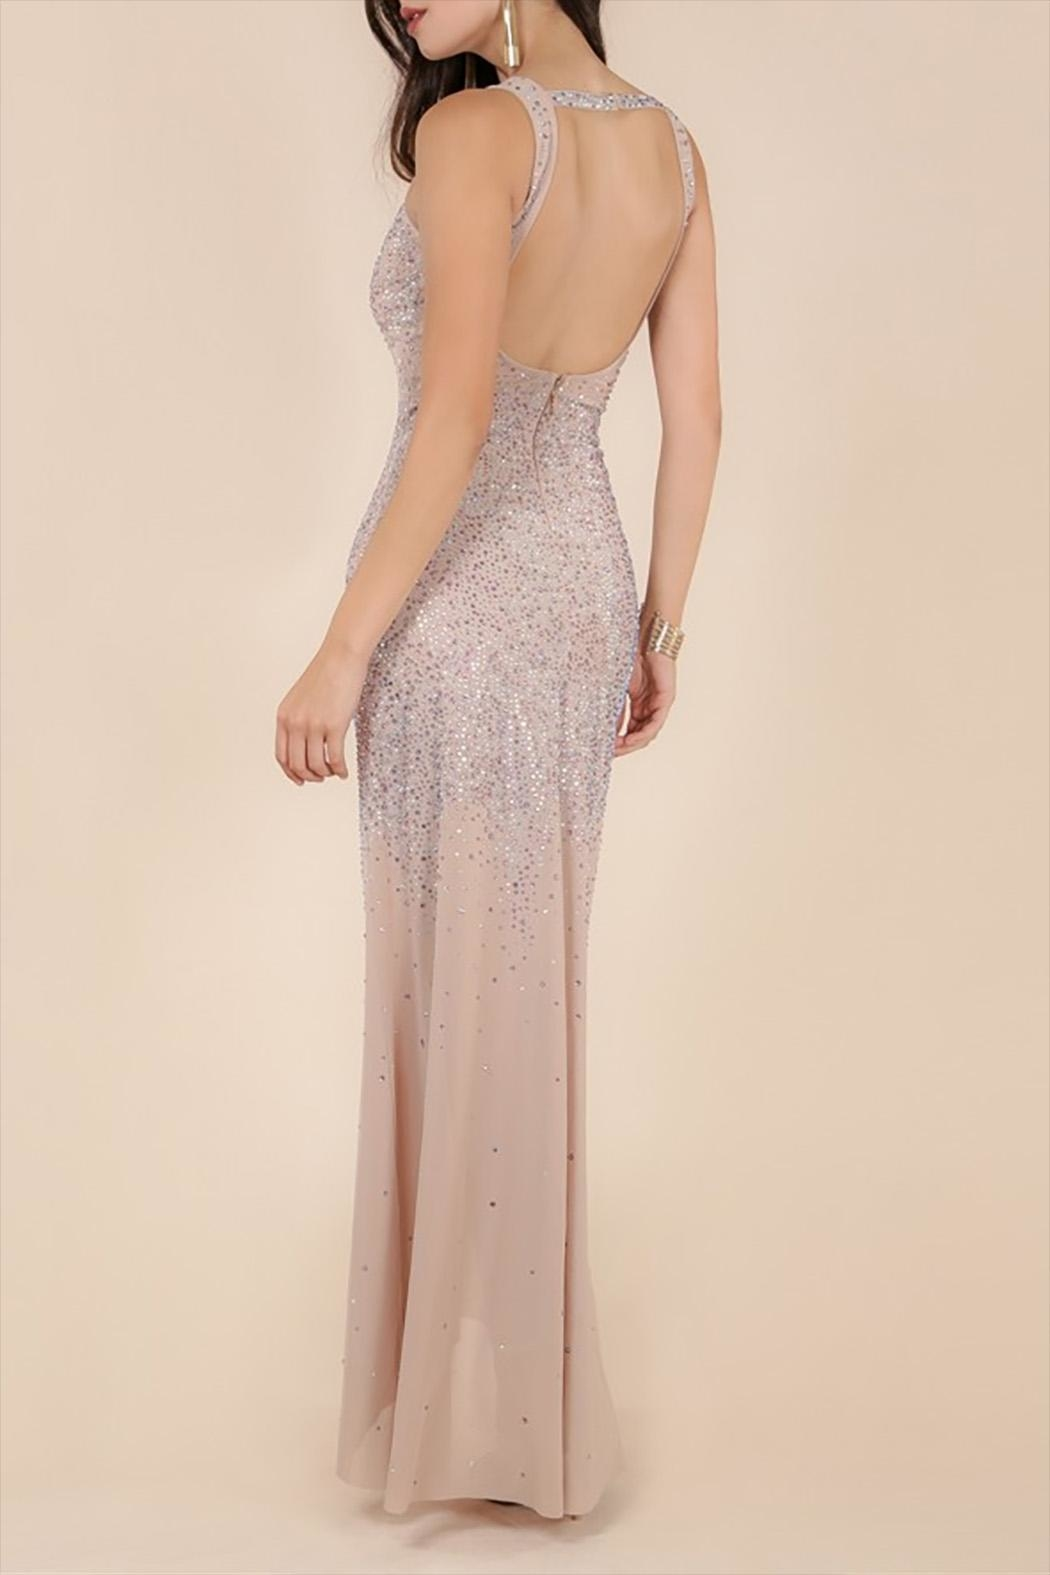 Wow Couture Rhinestones Maxi Dress - Front Full Image